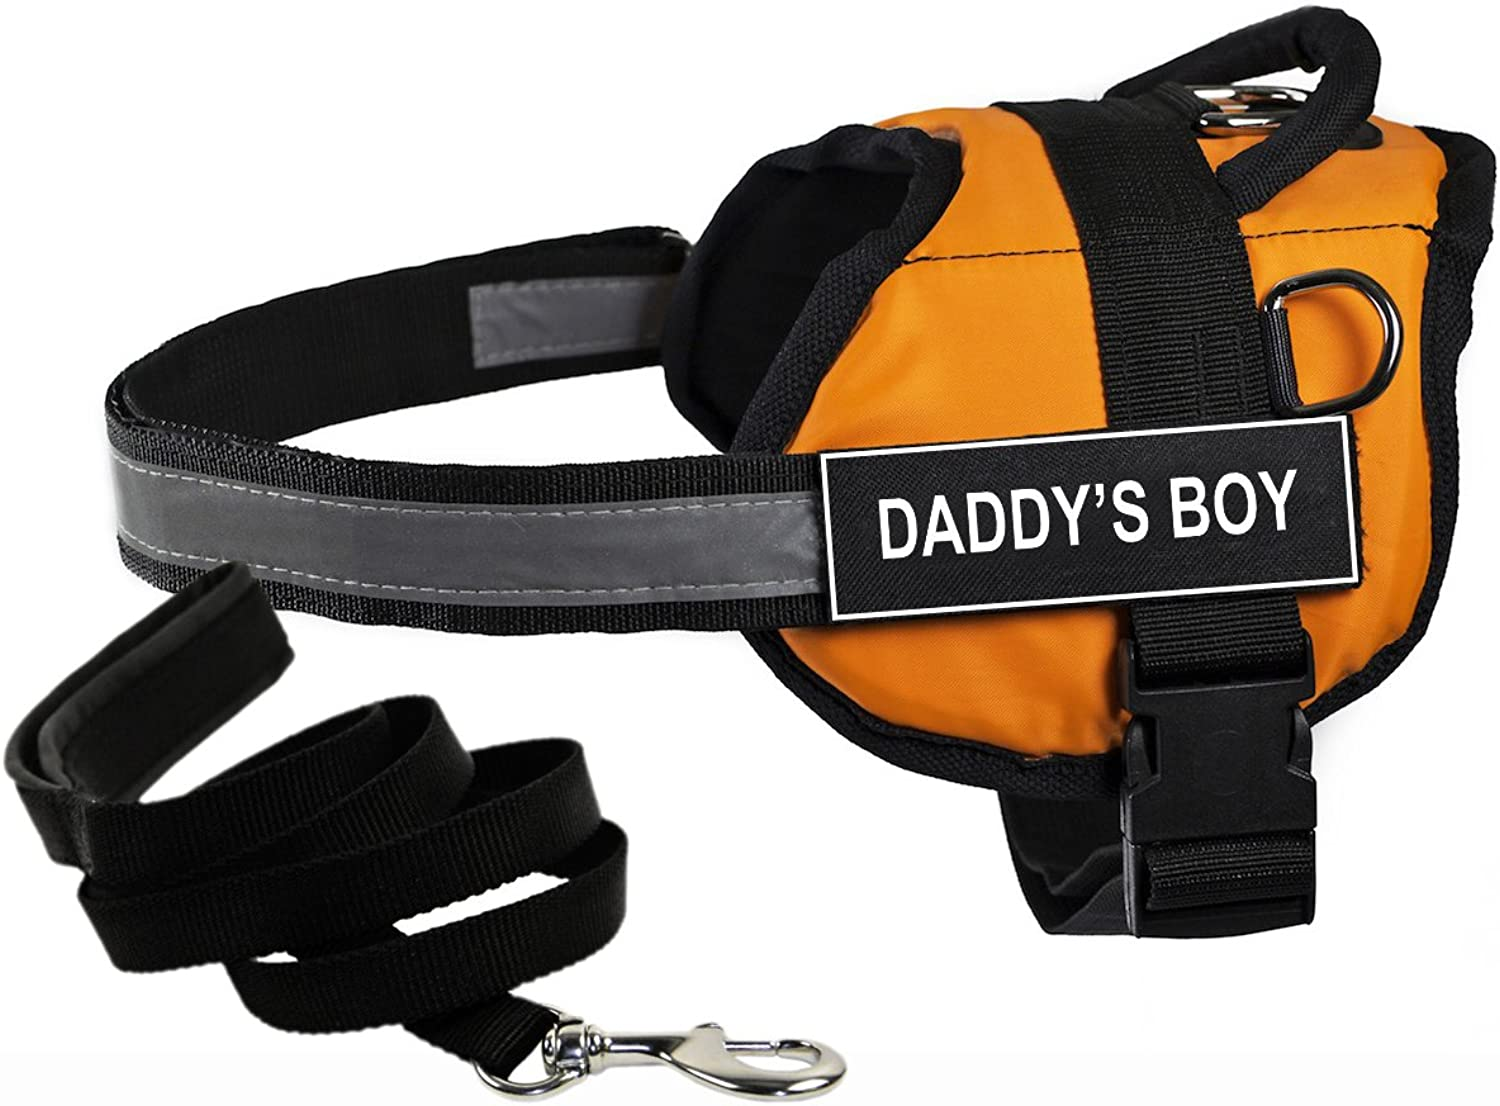 Dean & Tyler's DT Works orange  DADDY'S BOY  Harness with Chest Padding, XSmall, and Black 6 ft Padded Puppy Leash.